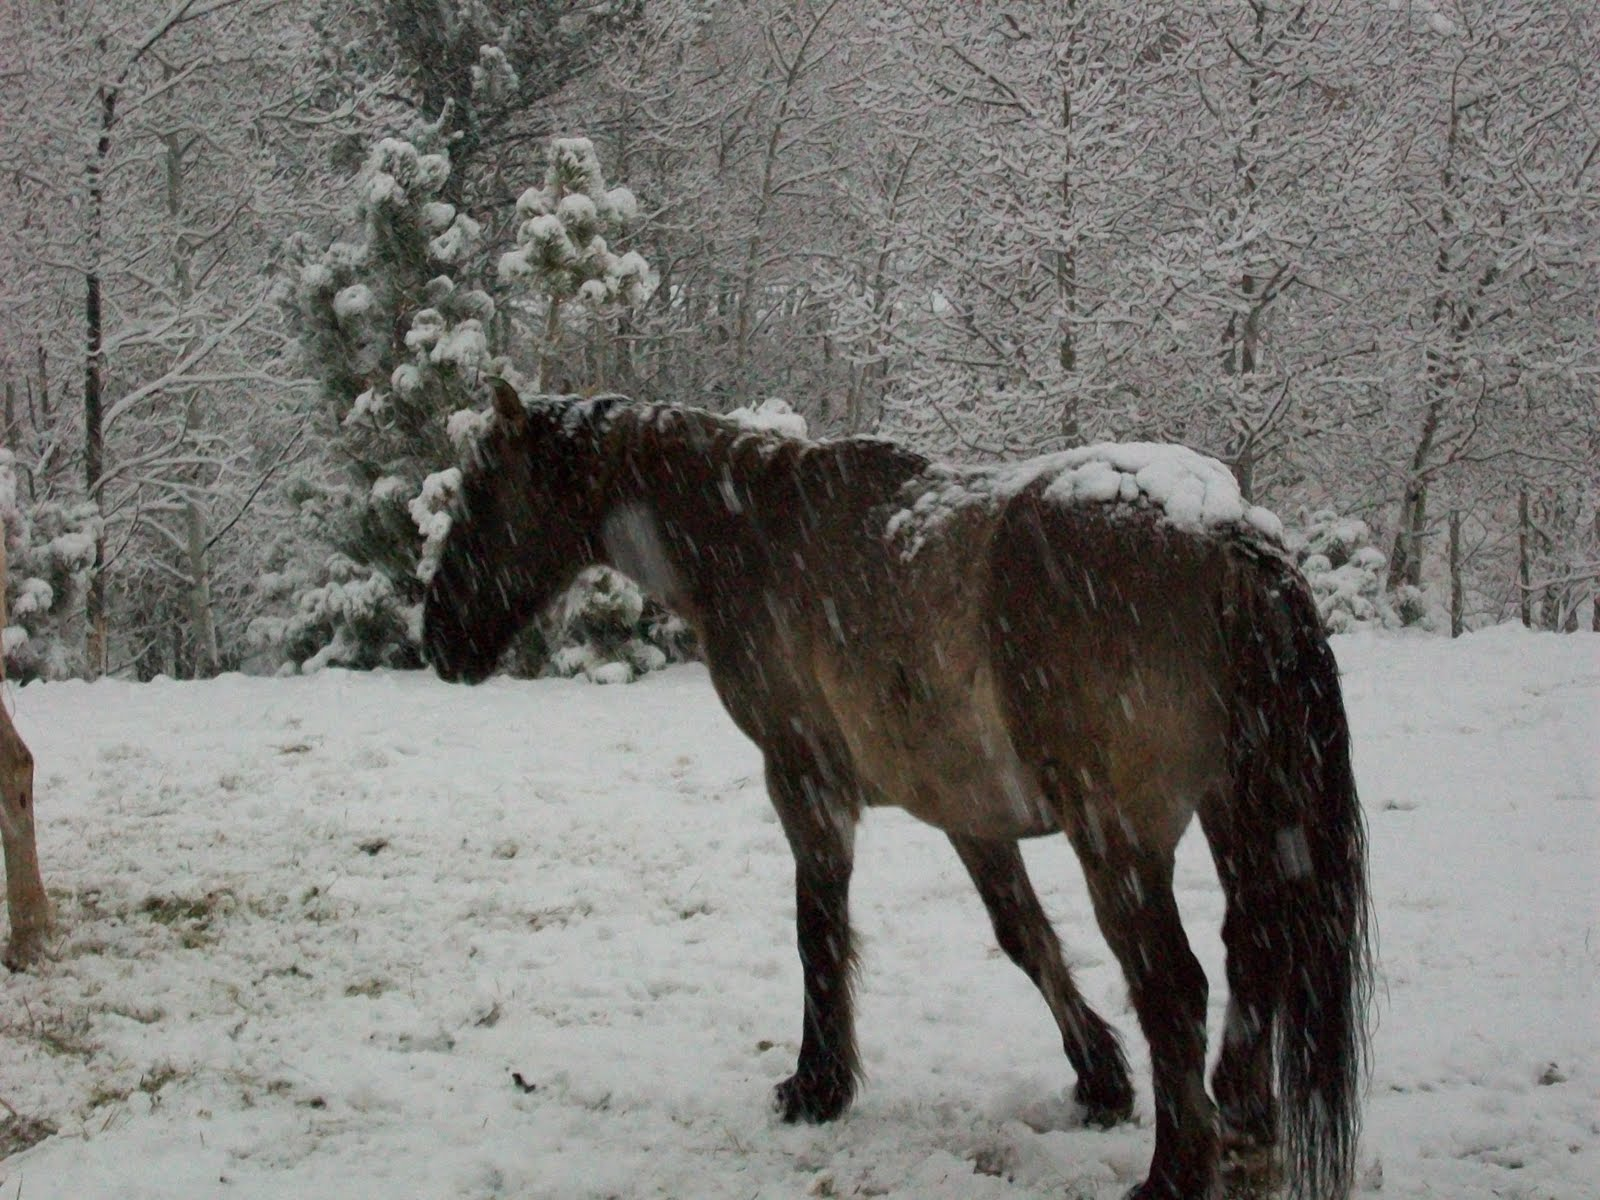 Popular   Wallpaper Horse Winter - April+download+131  Pic_964926.jpg